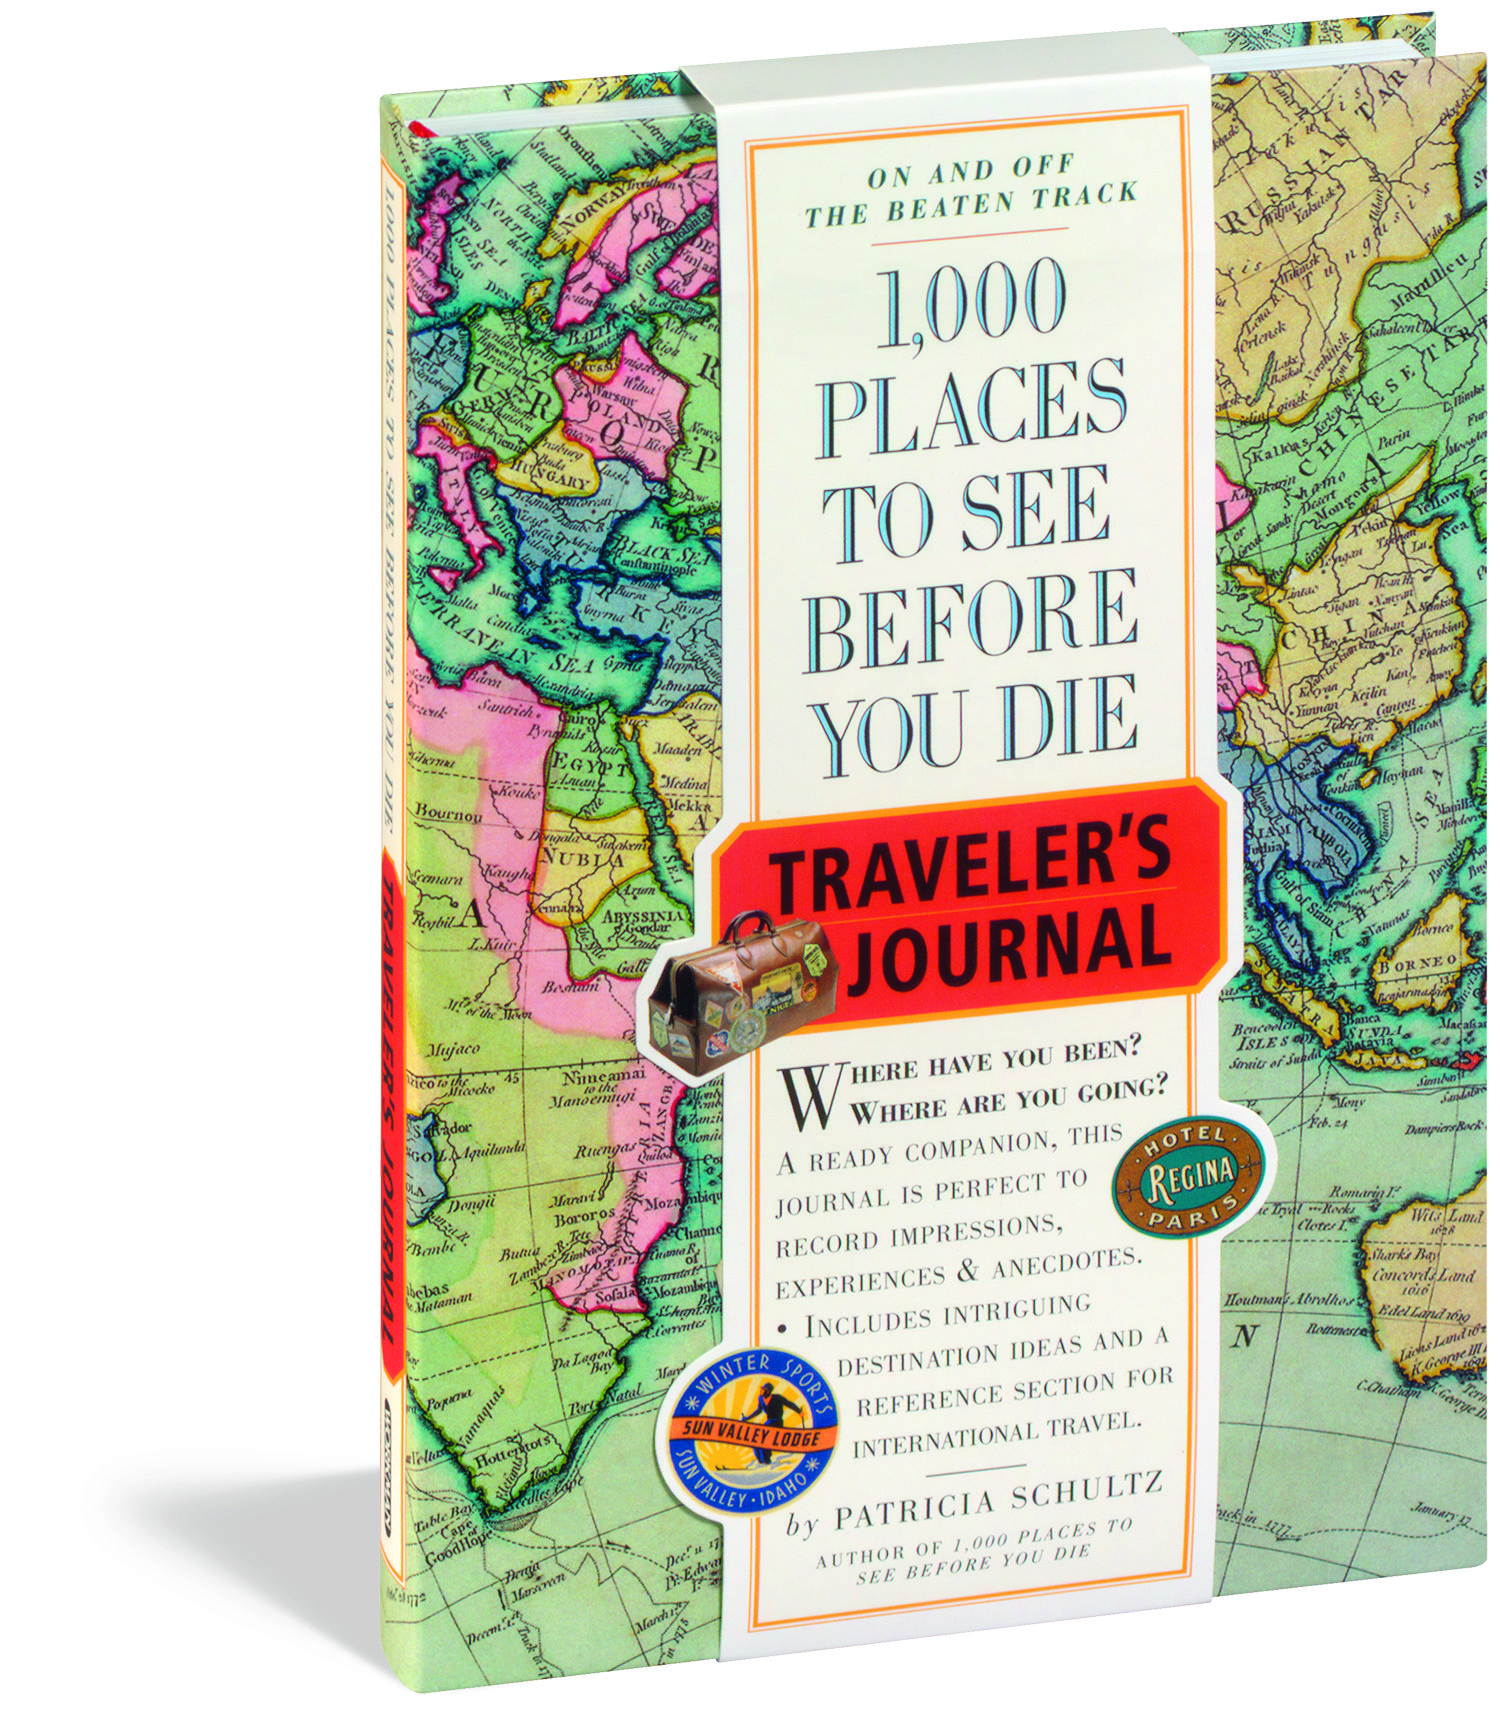 1000 PLACES TO SEE BEFORE YOU DIE TRAVELERS JOURNAL By Patricia Schultz Published Workman